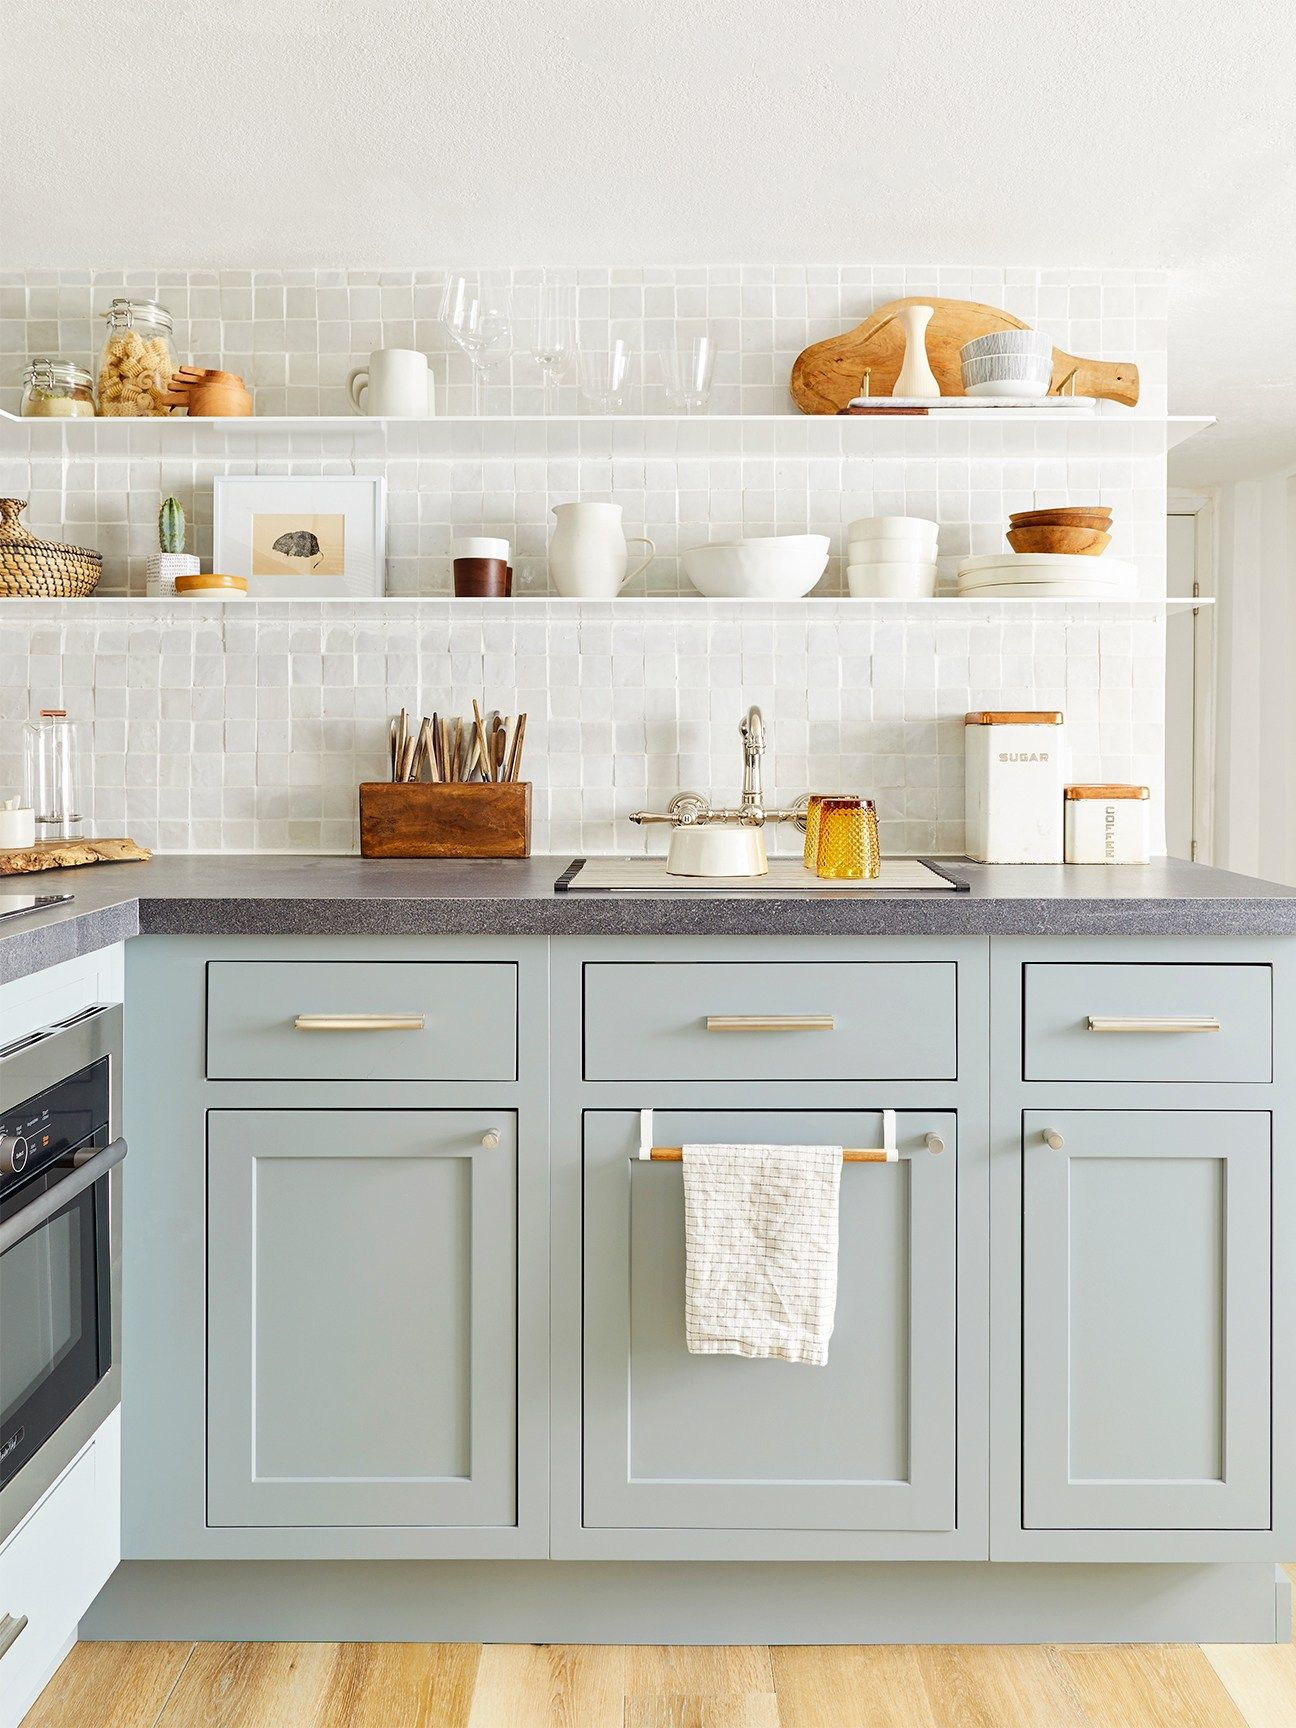 5 kitchen cabinet colors set to take over in 2020 kitchen cabinet colors best kitchen on kitchen interior trend 2020 id=21653